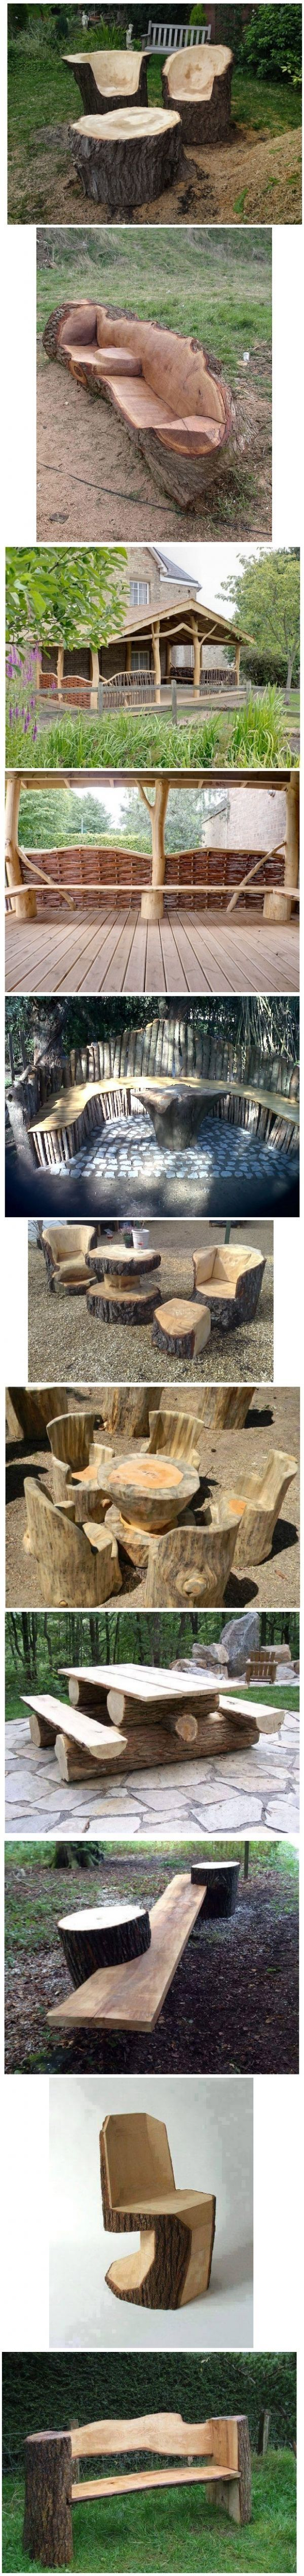 Beautiful Rustic Pieces of Furniture for the House or Garden | WoodworkerZ.com